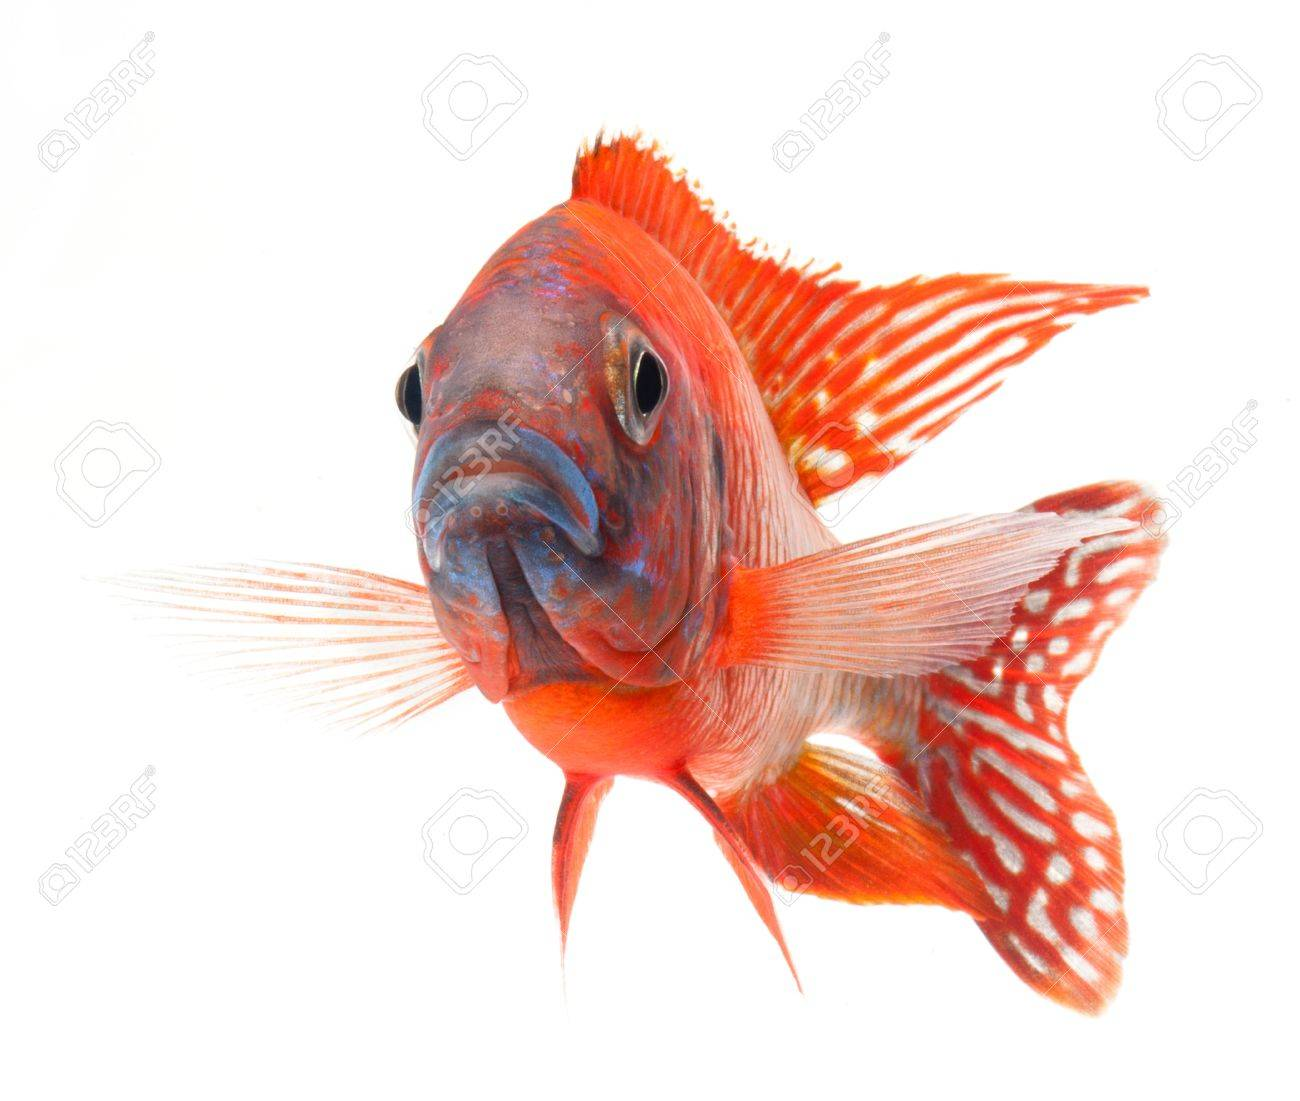 red cichlid fish, ruby red peacock fish, isolated on white background Stock Photo - 11542063